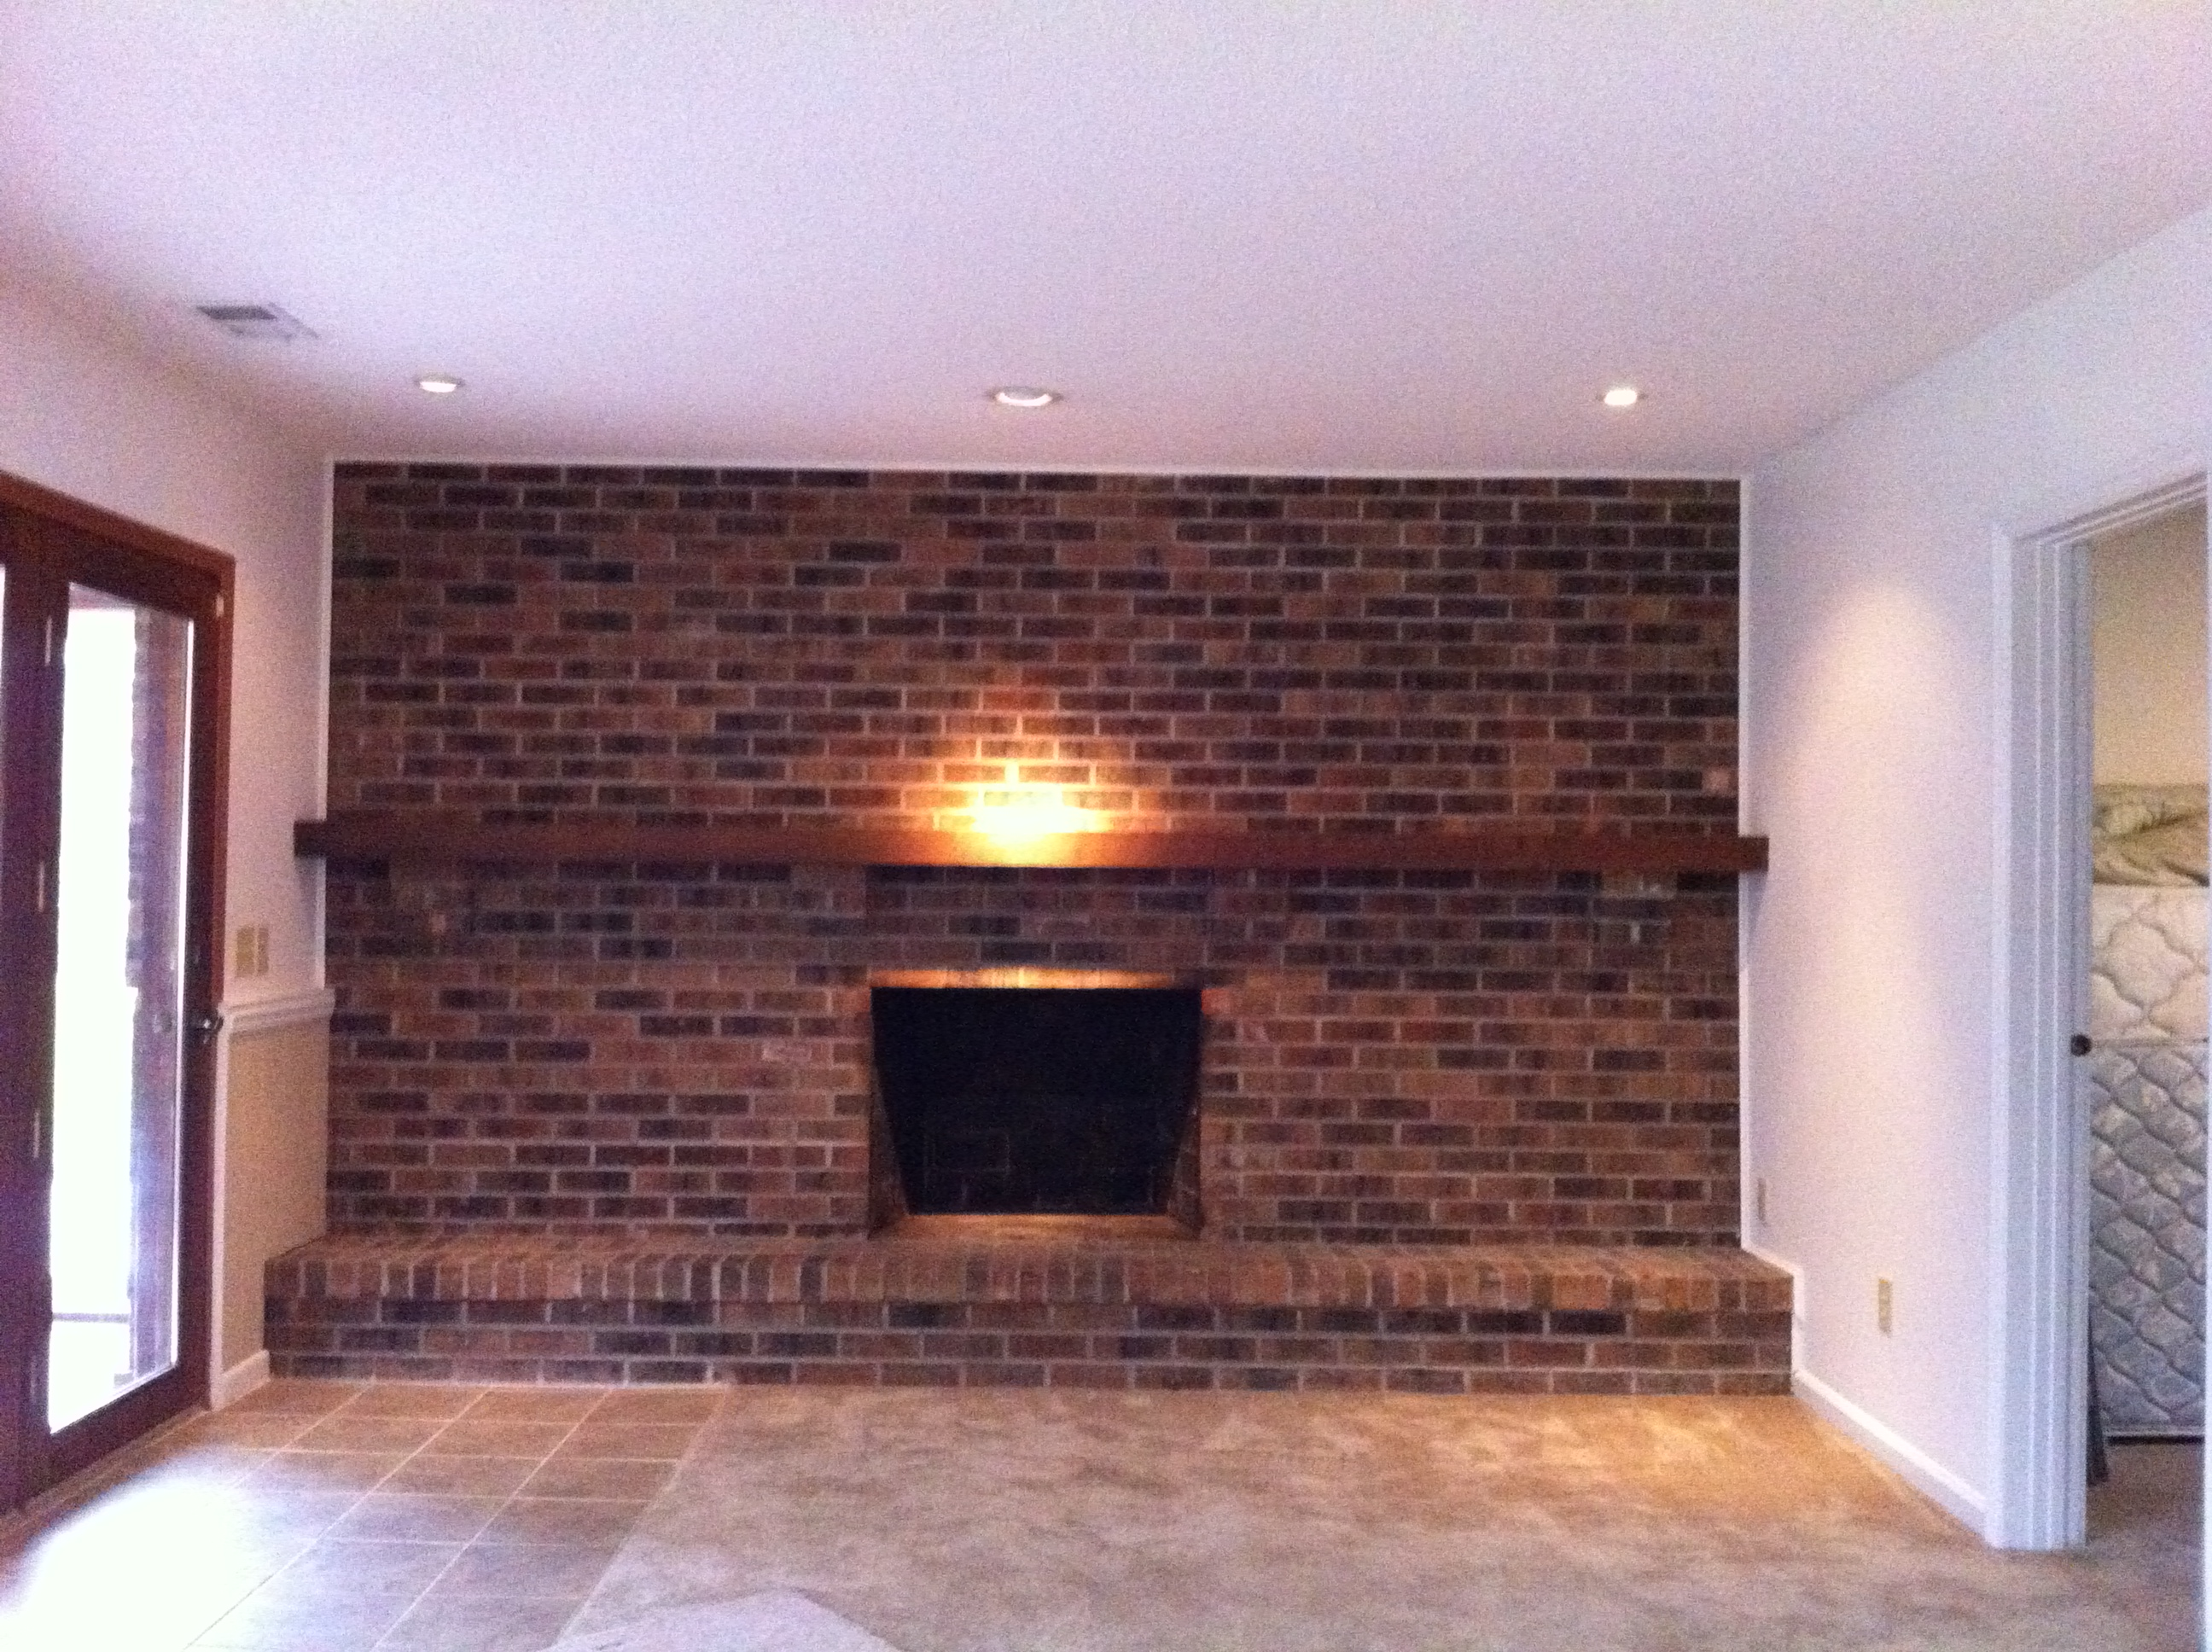 How To Decorate Fireplace Wall How To Decorate A Full Wall Brick Fireplace Wall Decor Ideas